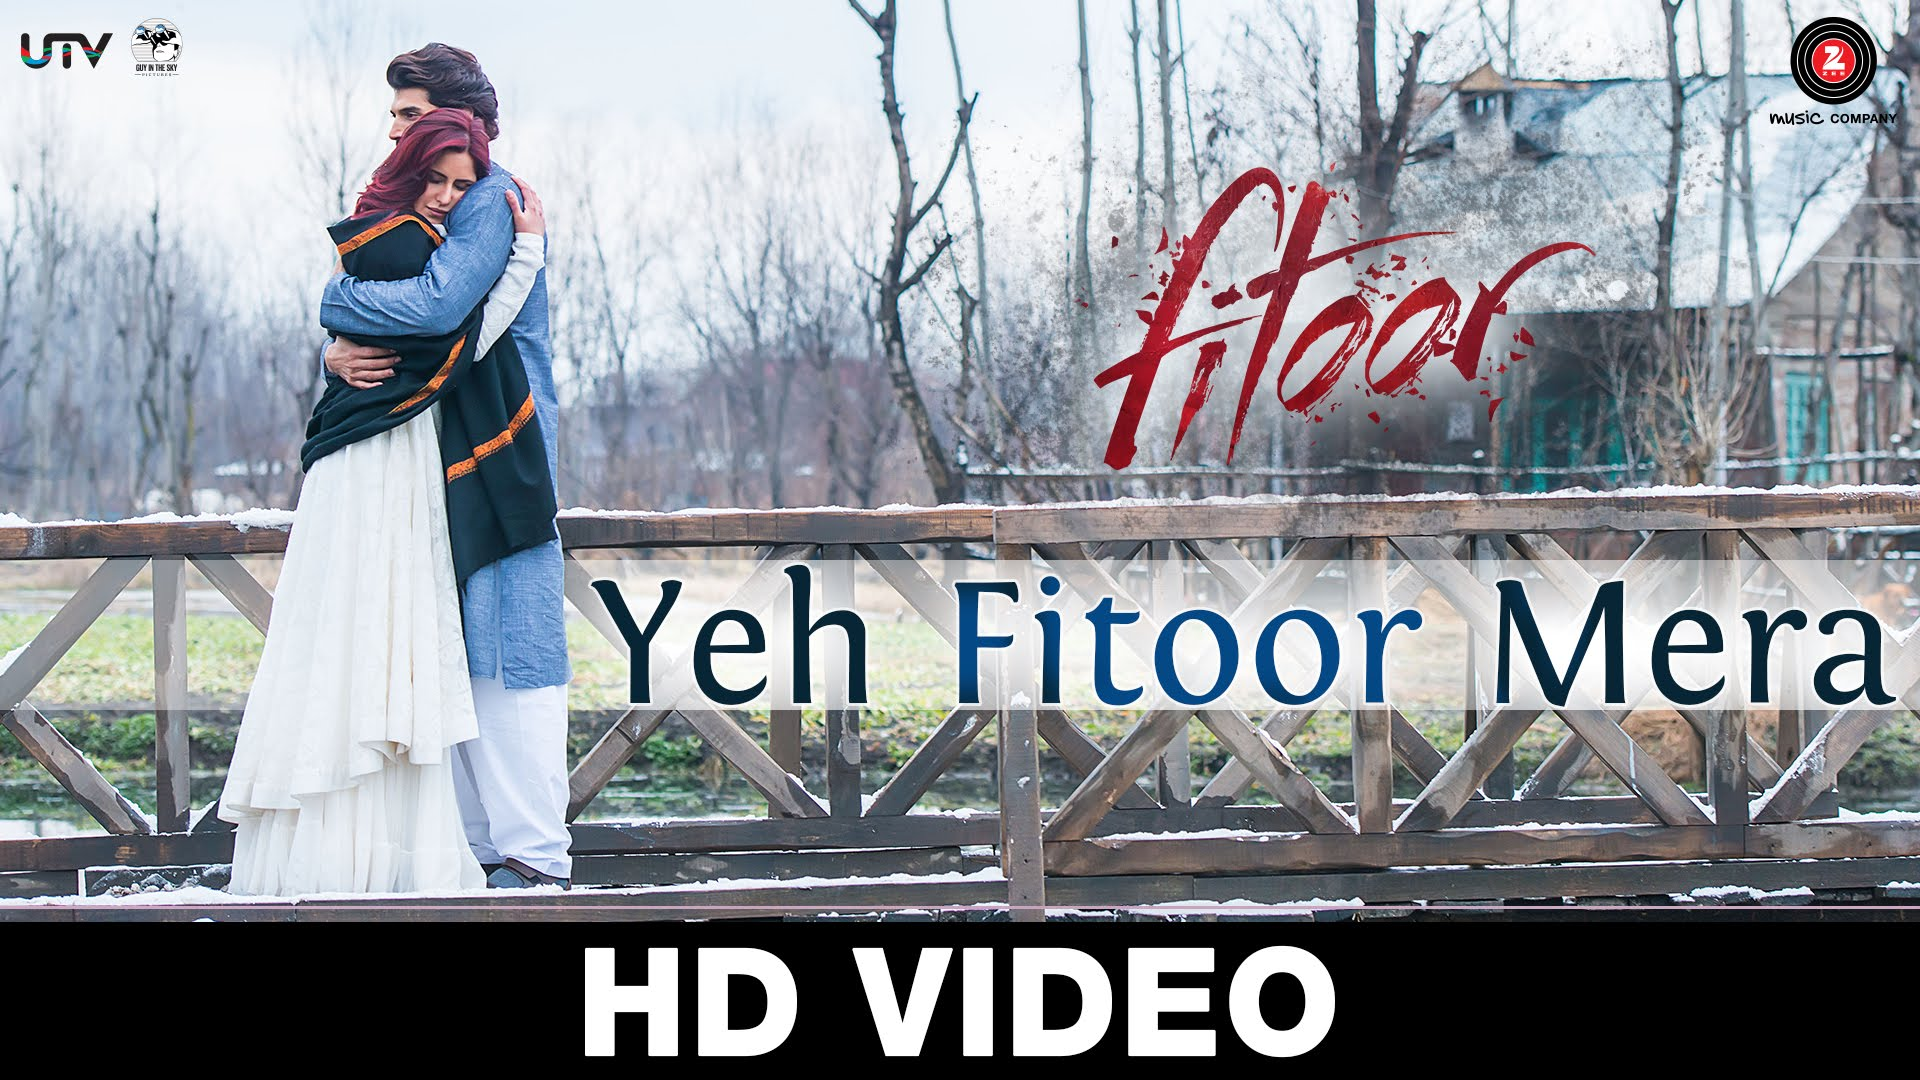 Yeh Fitoor Mera Video Song- The first Fitoor Song is so beautiful that it hurts